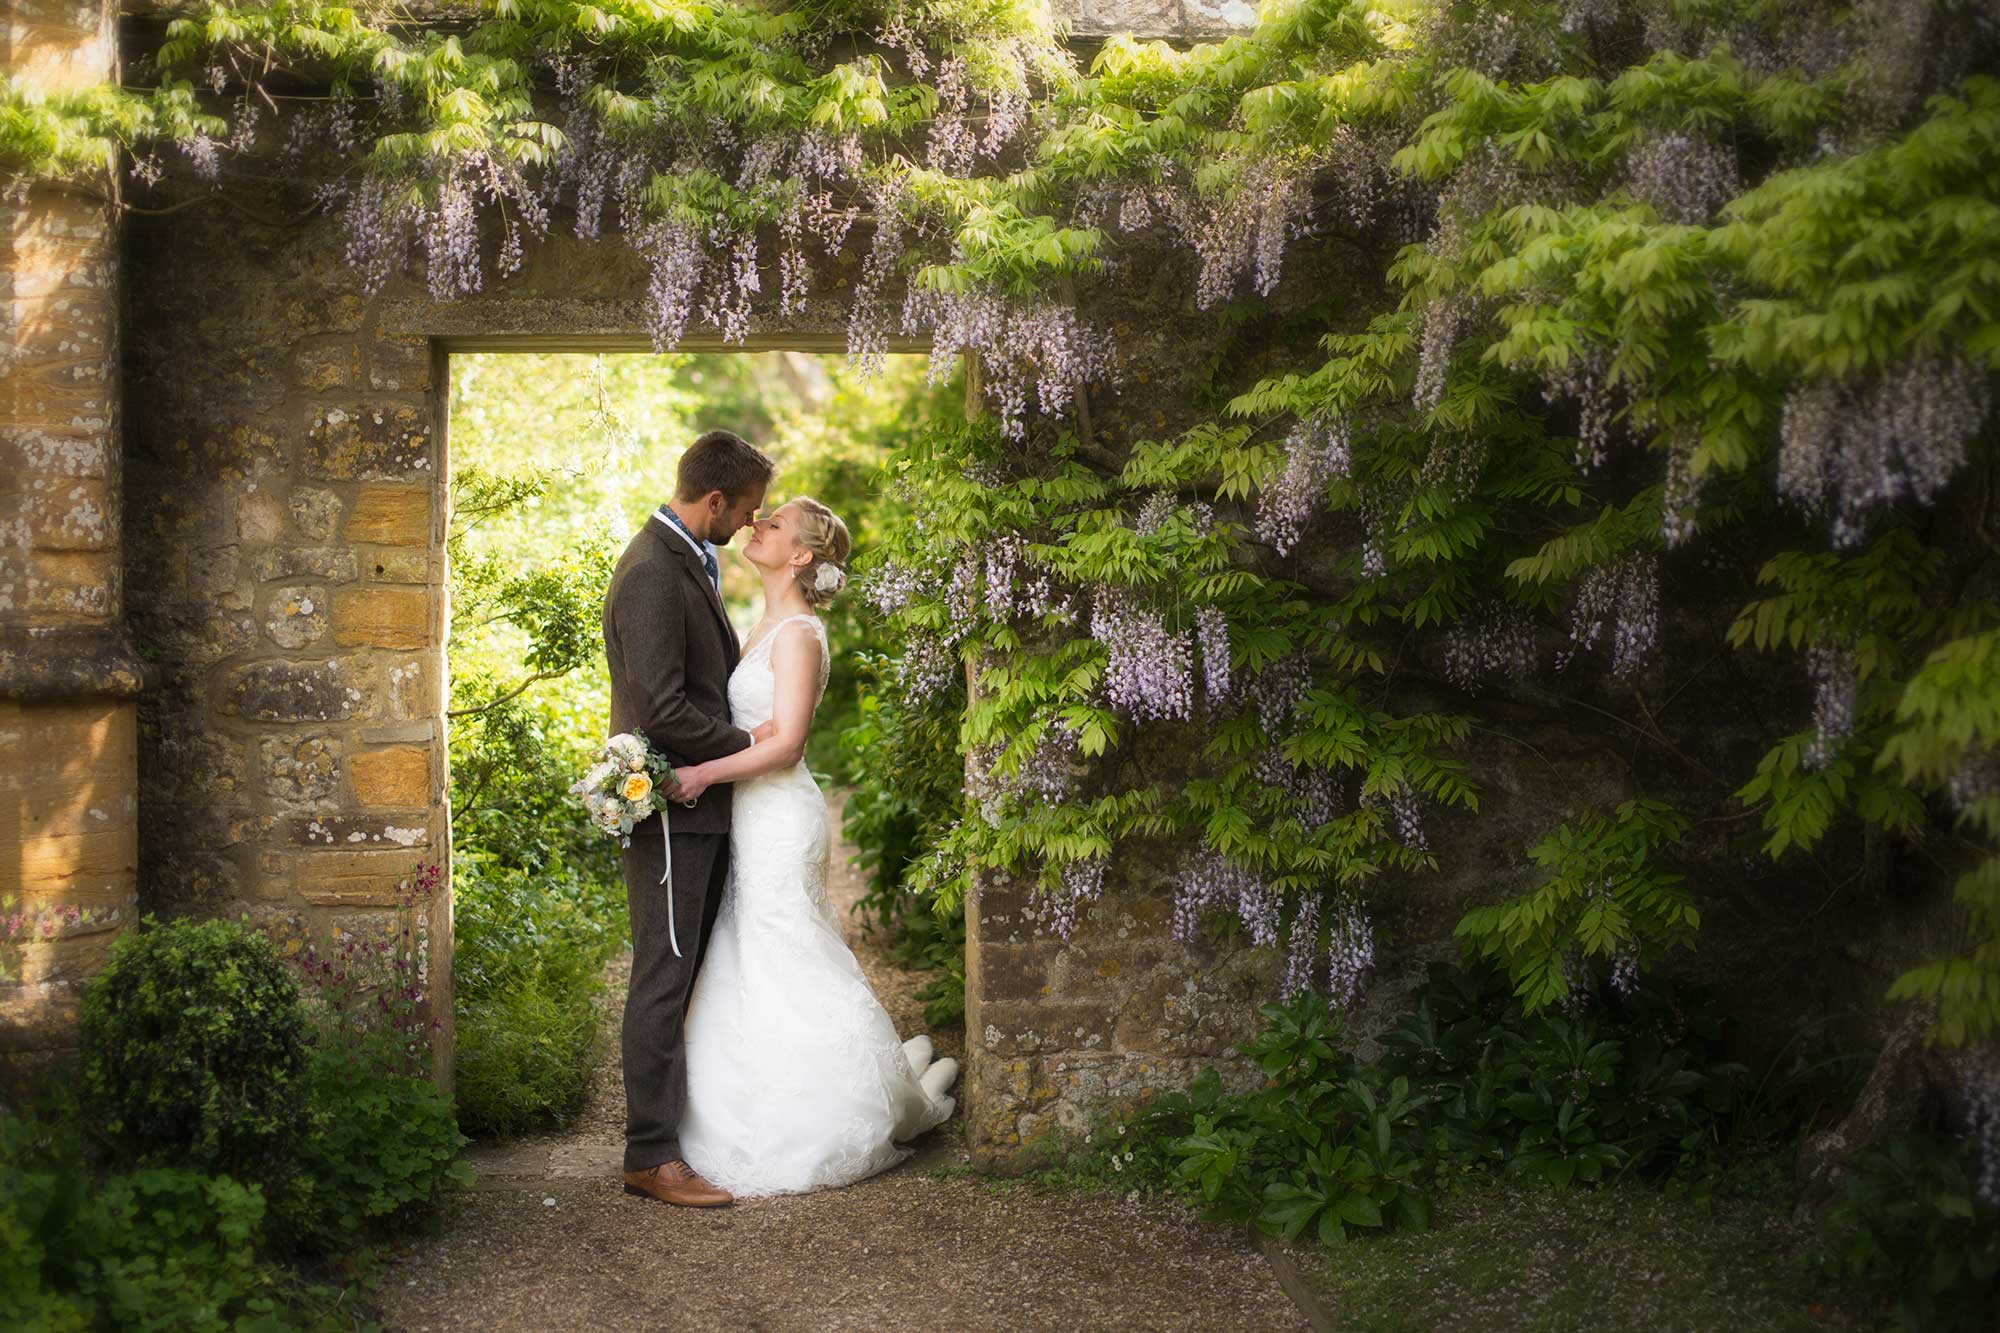 Under the Wisteria at Mapperton Gardens - Dorset wedding venue